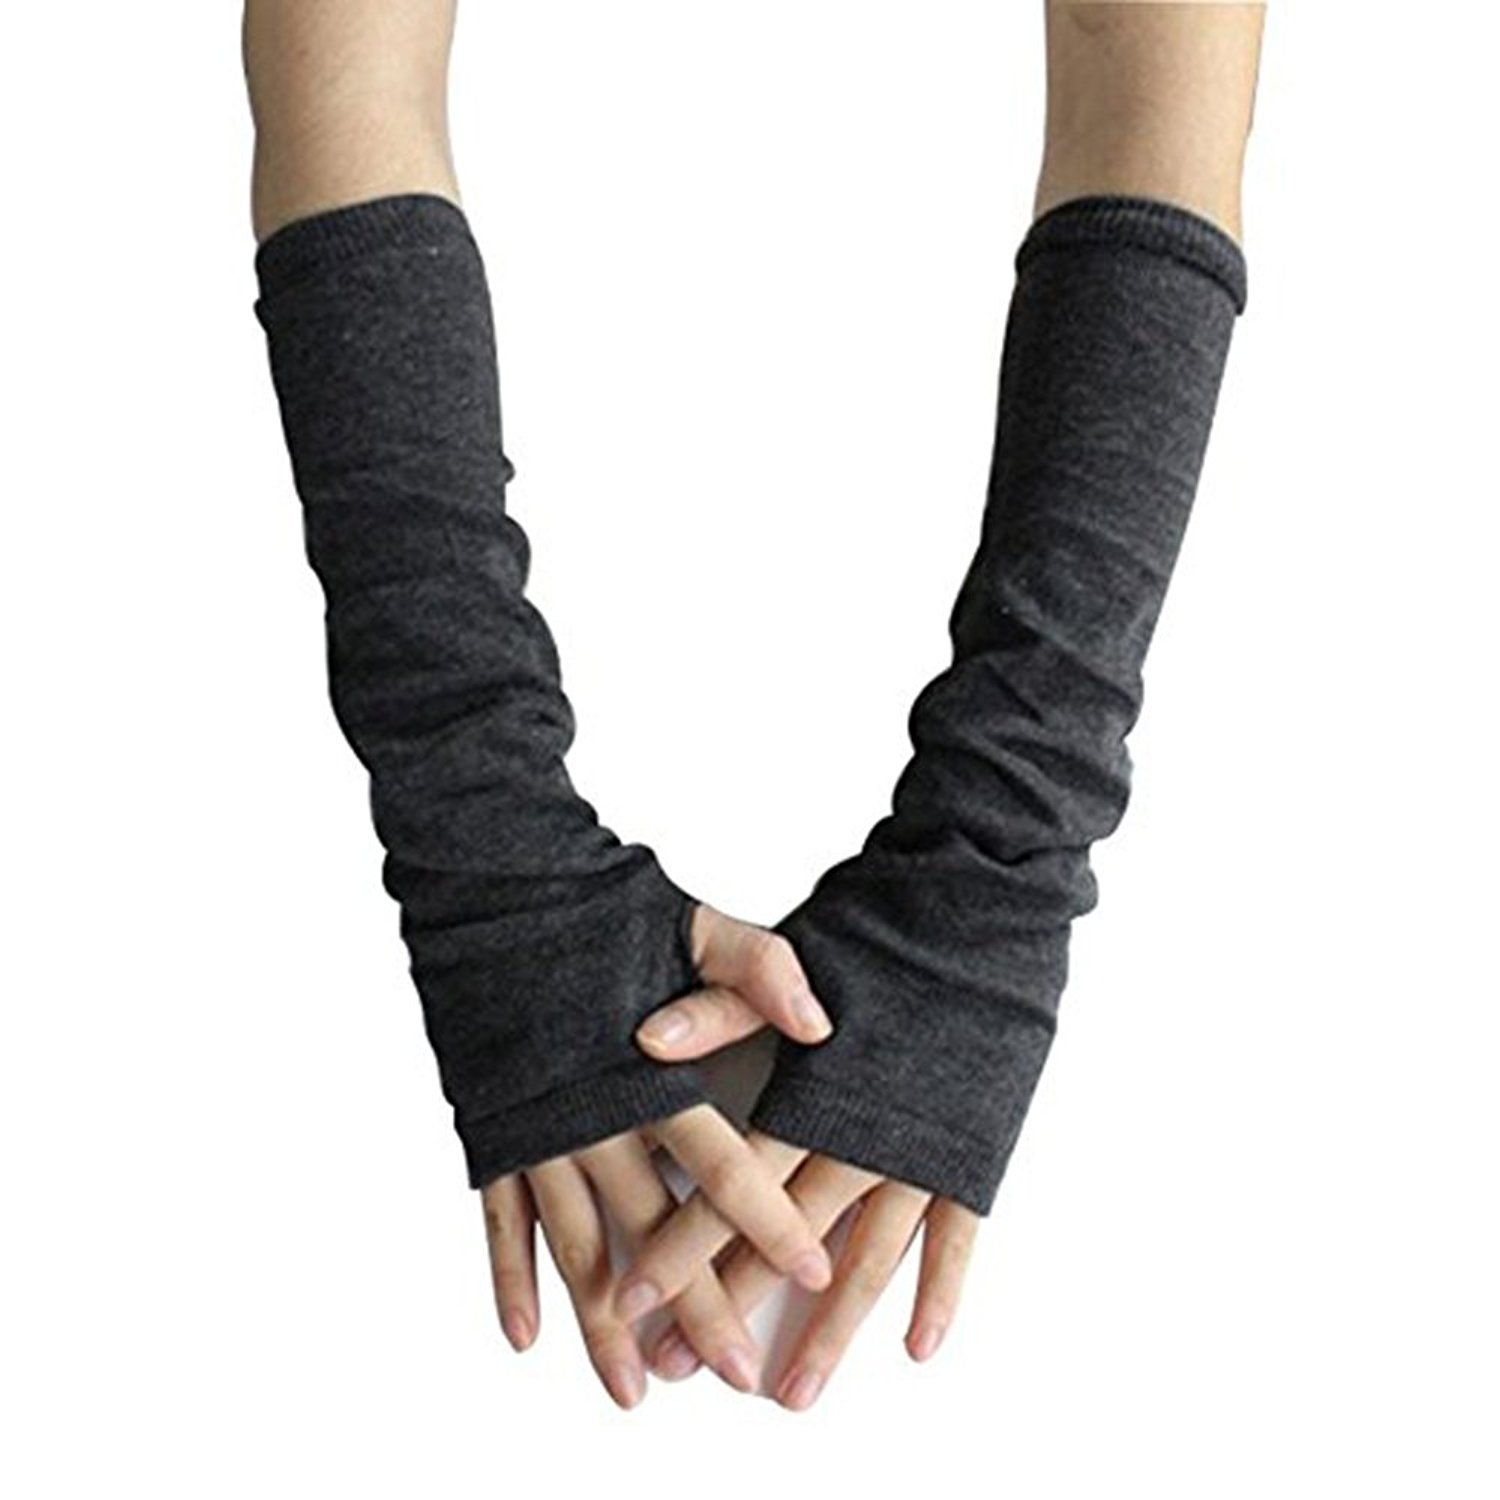 Women Knitted Fingerless Winter Long Gloves Soft Mitten Wrist Arm Hand Warmer Bodhi2000 01746332Y54K5421